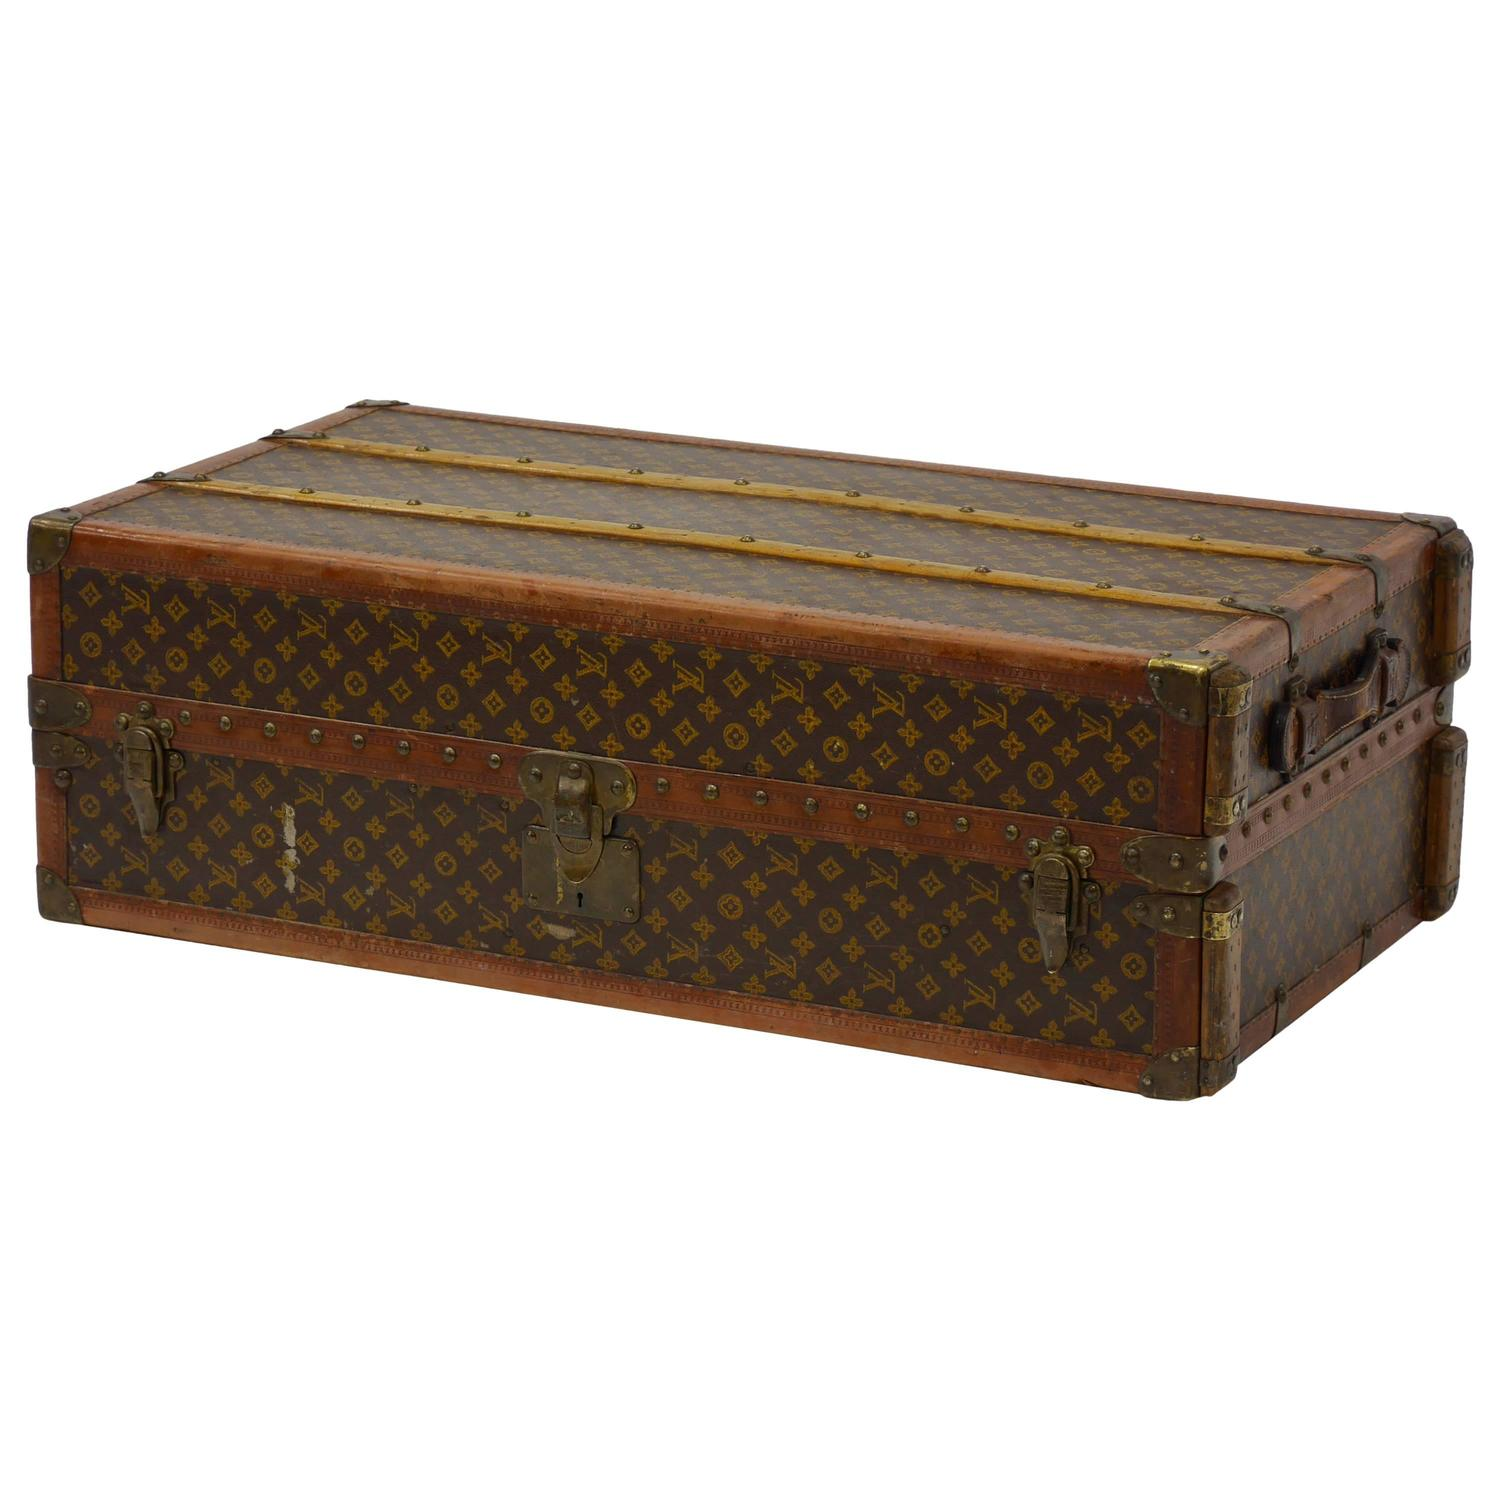 Lv Trunk Coffee Table: Fine Louis Vuitton Monogram Cabin Wardrobe Trunk At 1stdibs